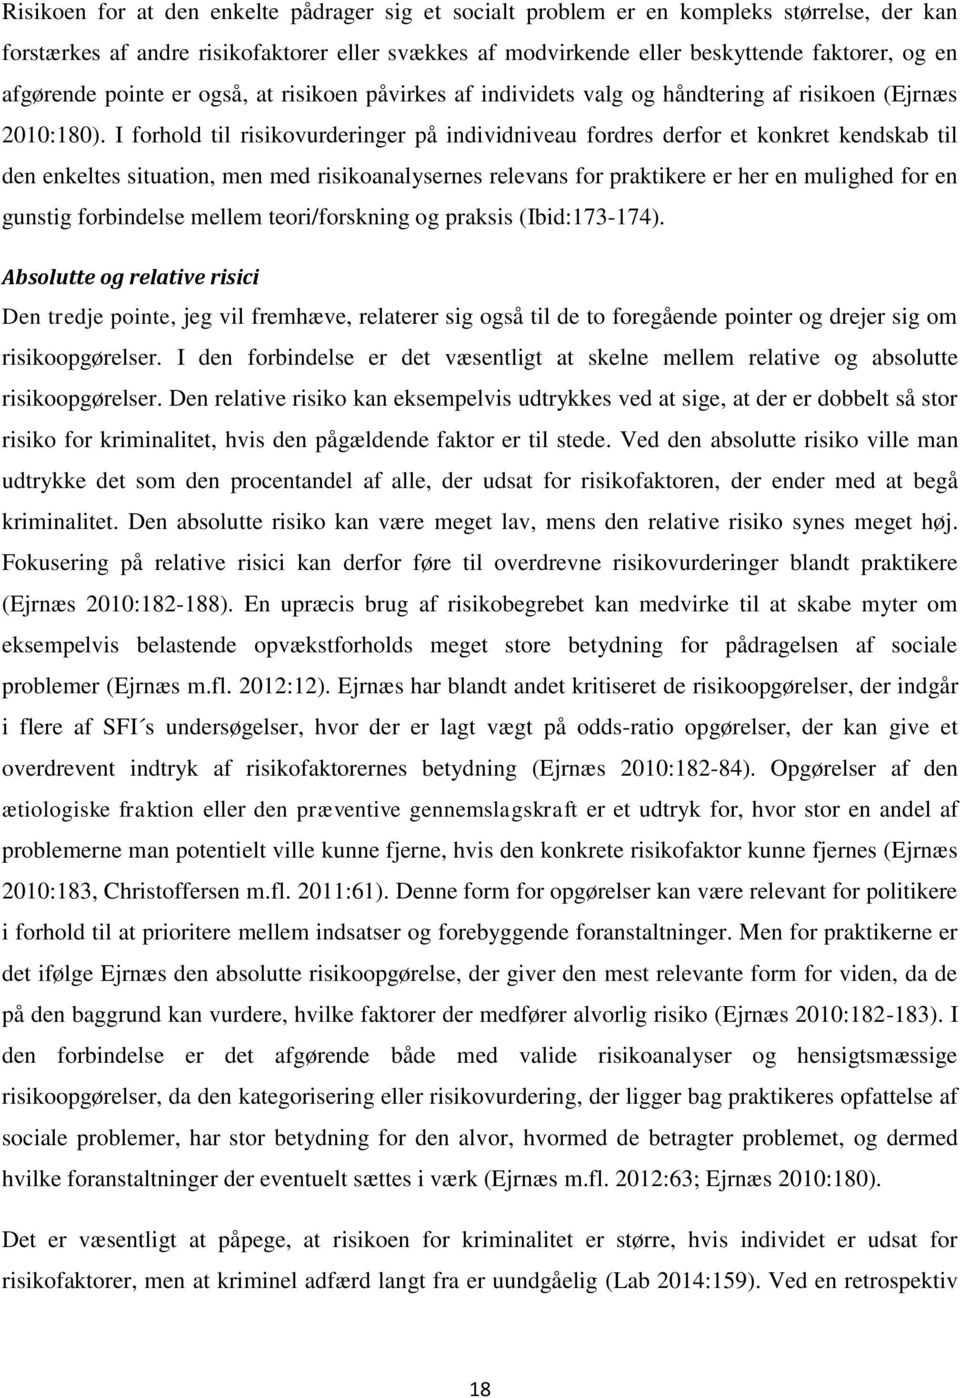 I forhold til risikovurderinger på individniveau fordres derfor et konkret kendskab til den enkeltes situation, men med risikoanalysernes relevans for praktikere er her en mulighed for en gunstig